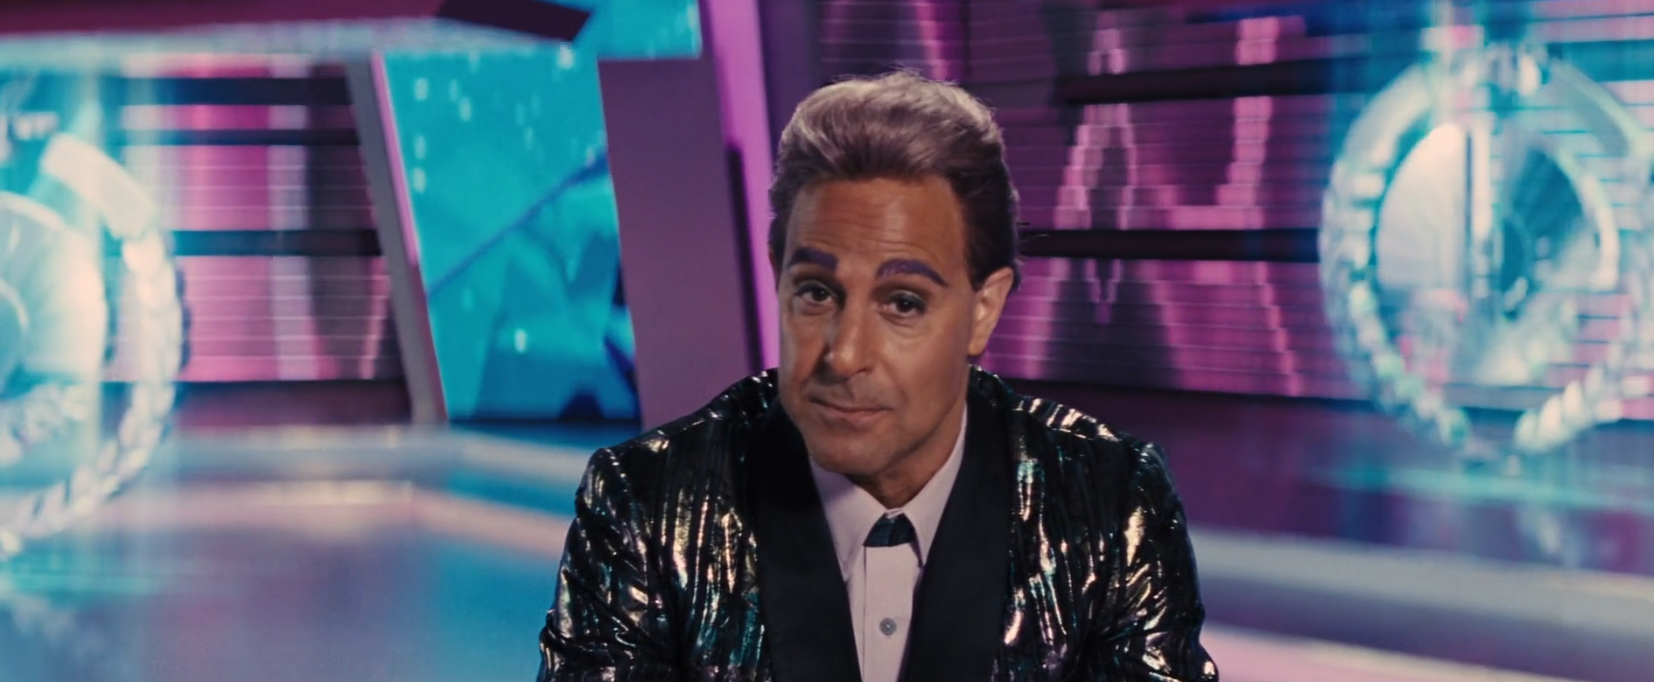 Stanley Tucci purple hair and eyebrows hunger games 2 catching fire